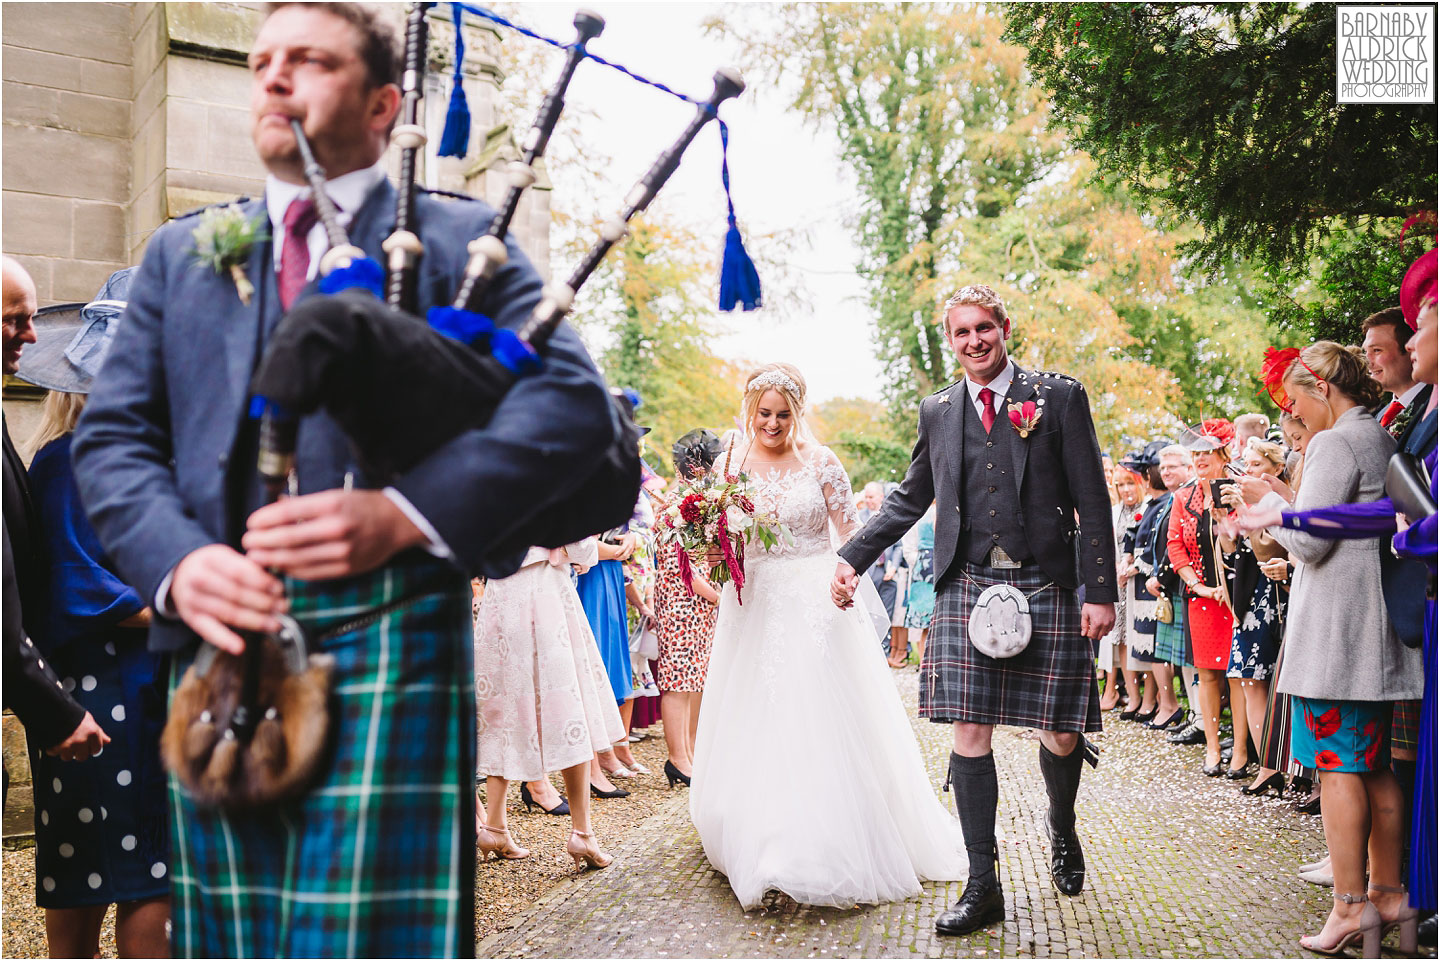 Yorkshire Garden Marquee Wedding Photo, Wedding Photography at a Yorkshire Garden Wedding, Yorkshire Marquee Wedding pictures, Wedding Photographer Yorkshire, Wedding kilts yorkshire